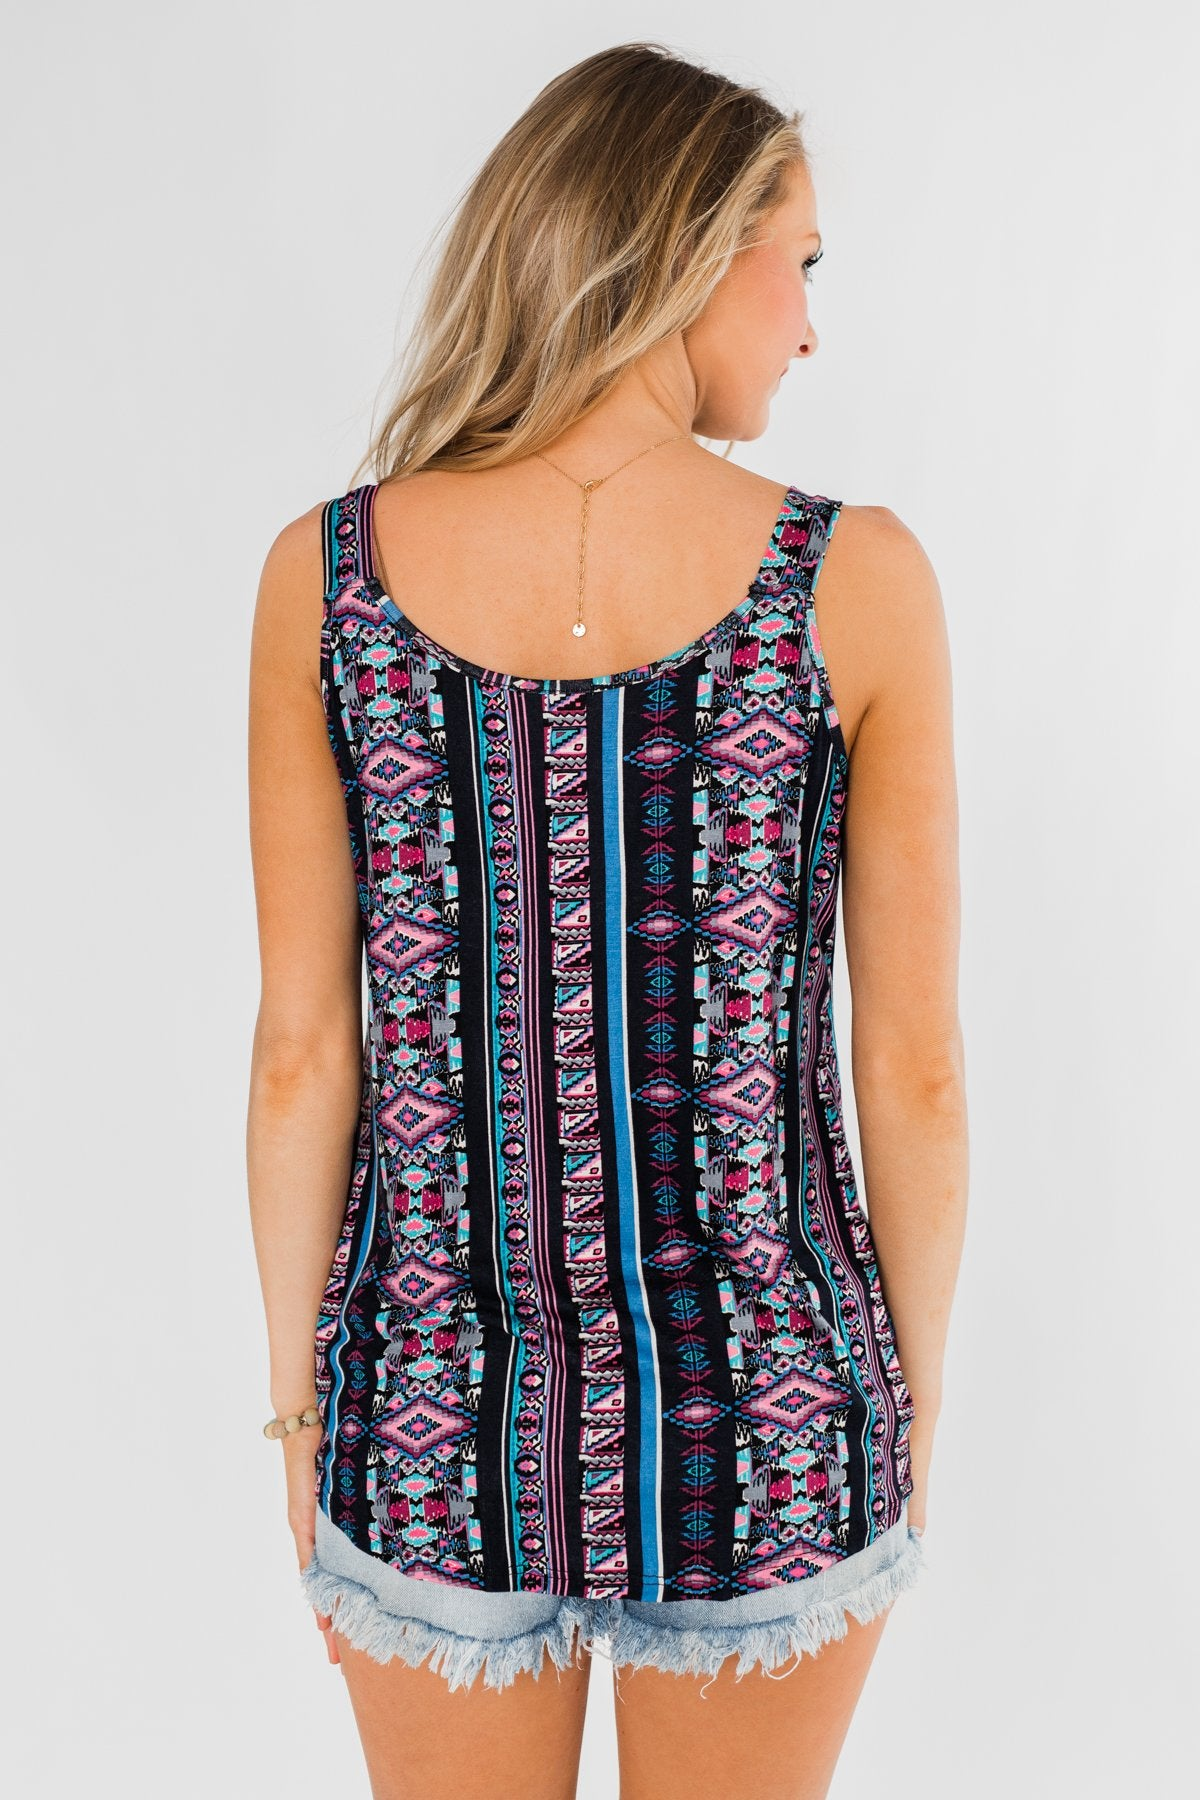 Set on You Aztec Twist Tank Top- Dark Navy & Pink